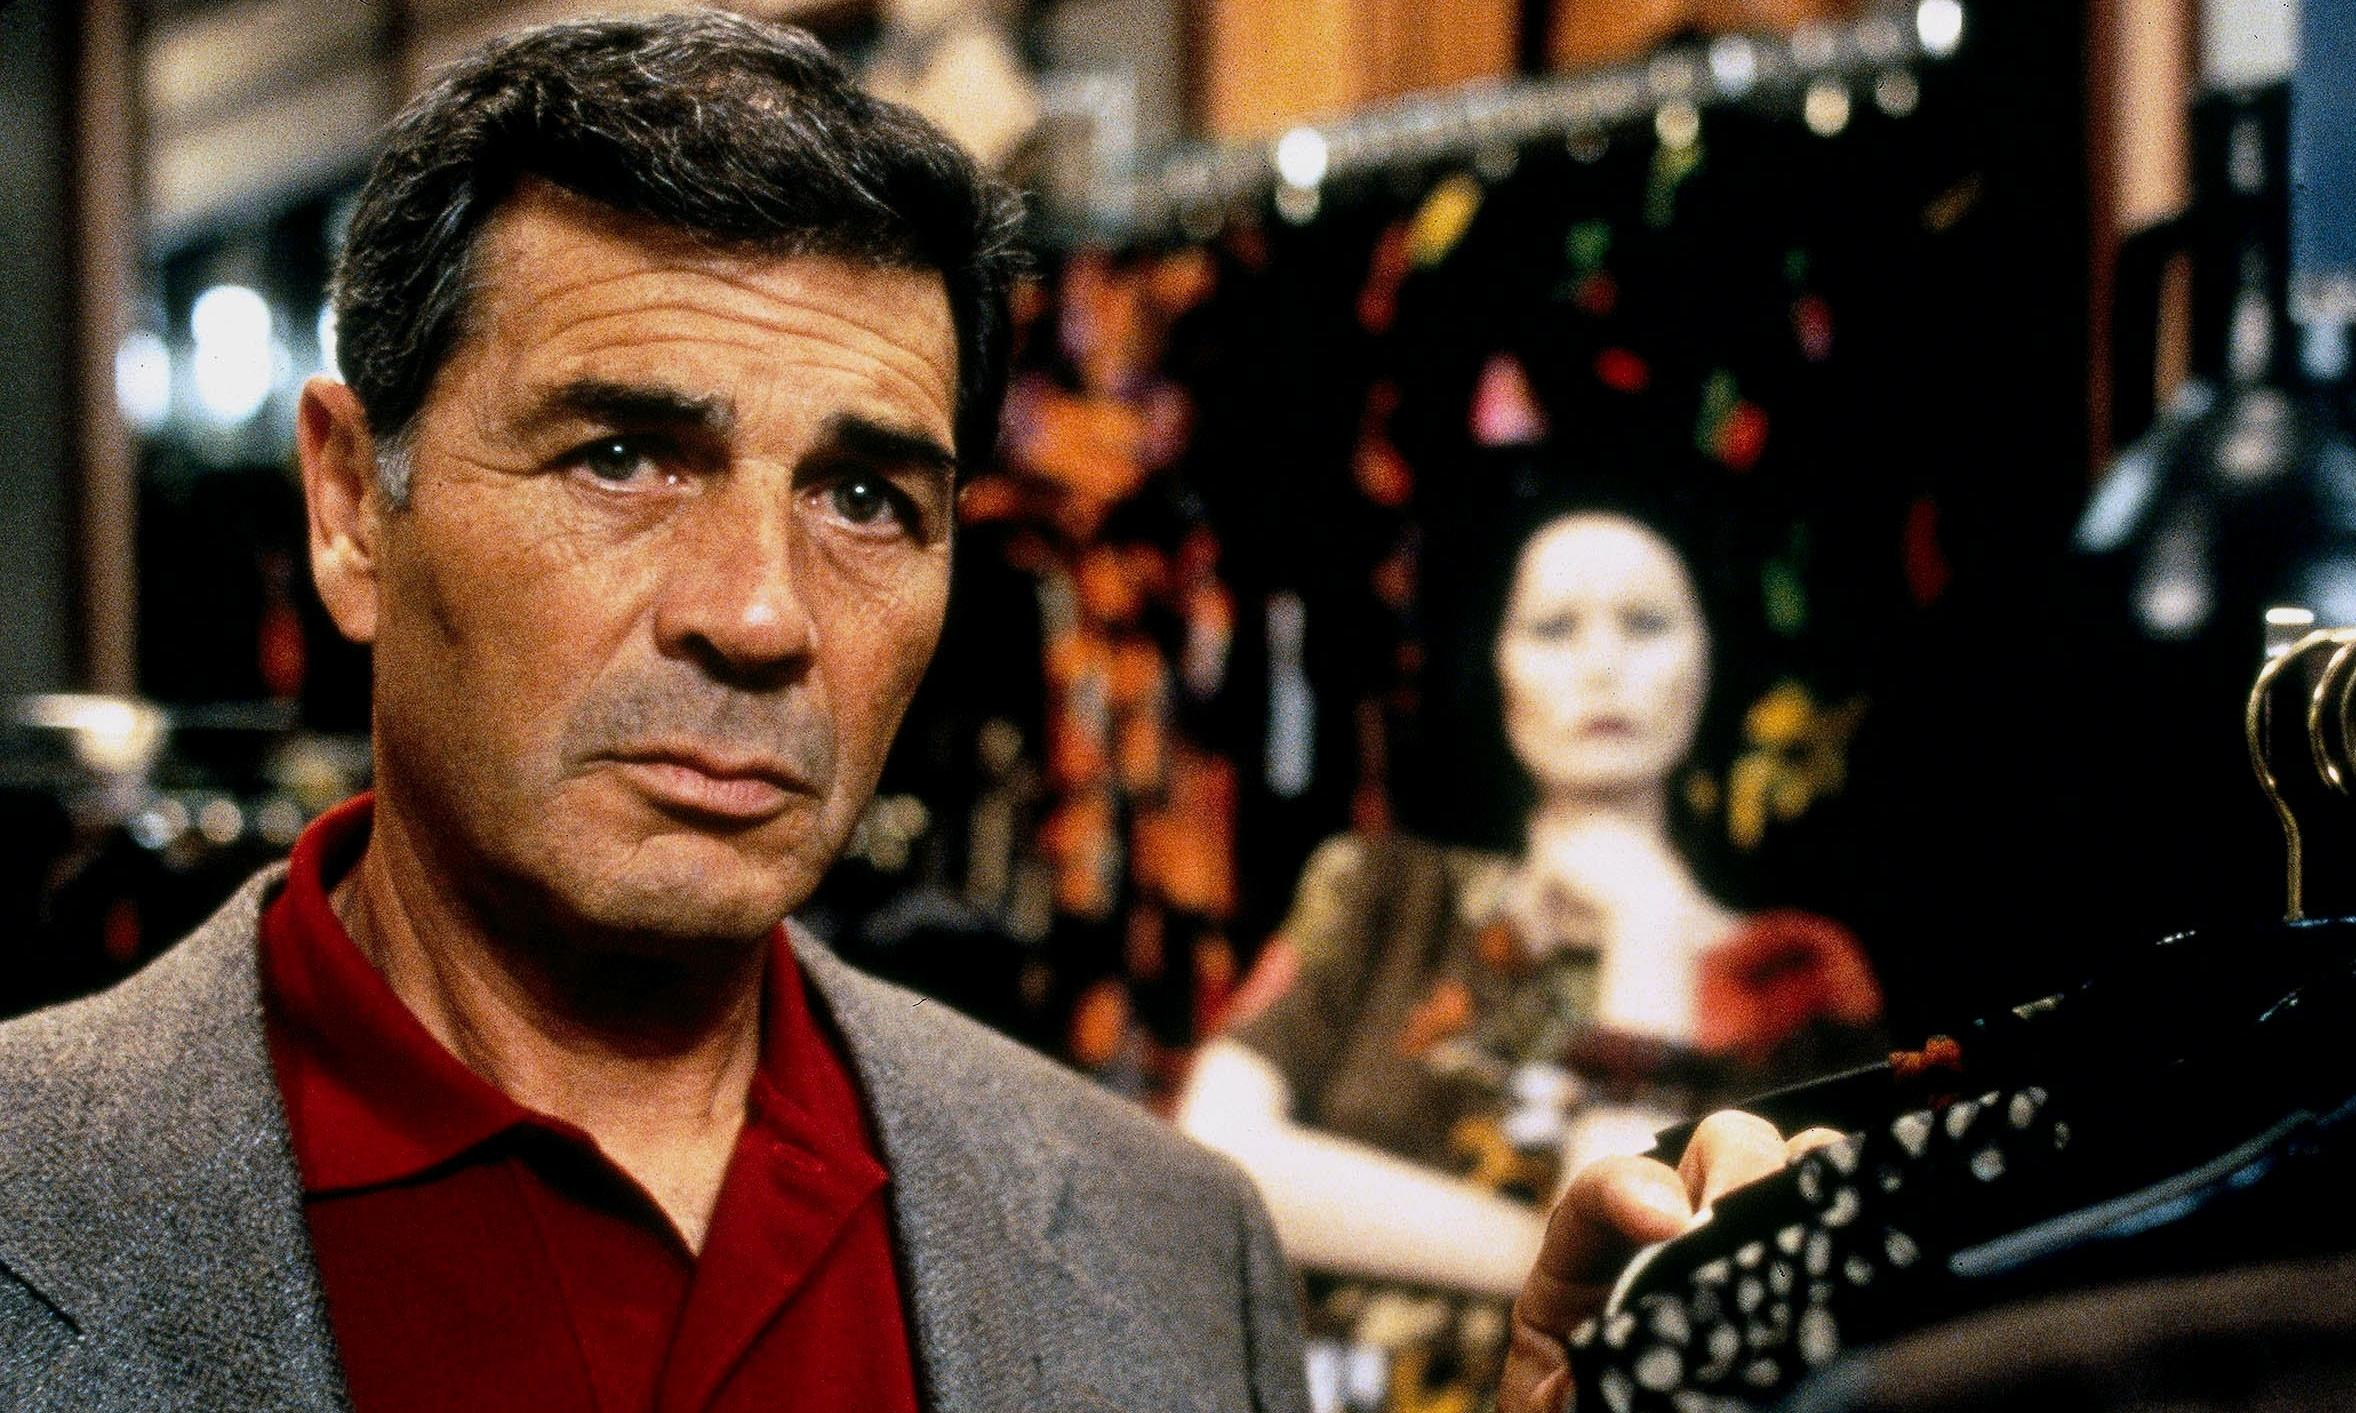 Robert Forster: a coolly charismatic character actor with an intensely sympathetic air